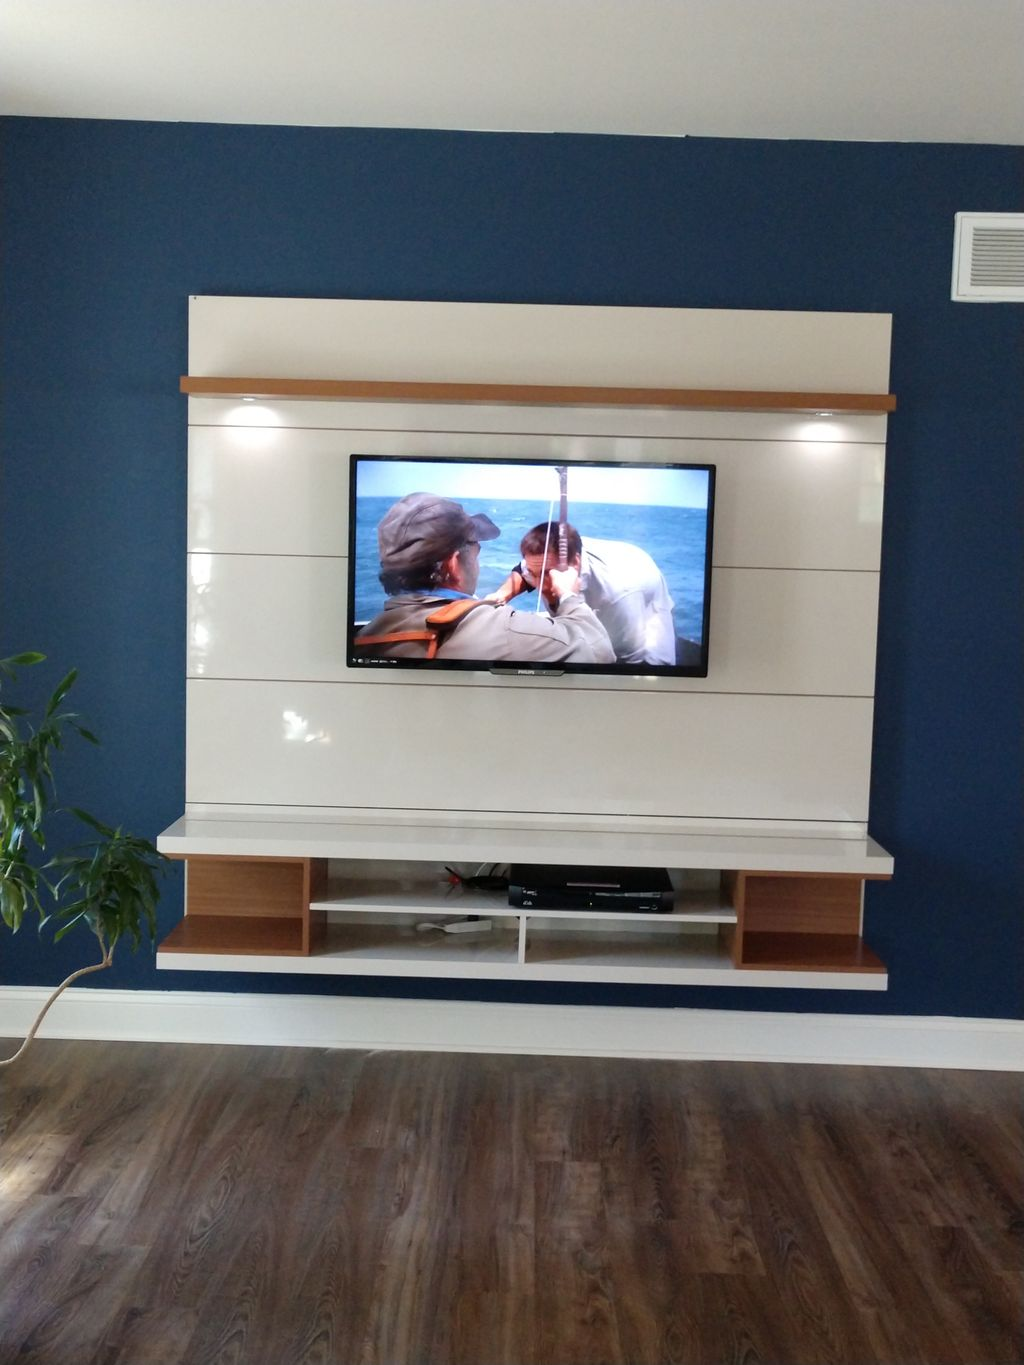 Wall entertainment system we installed